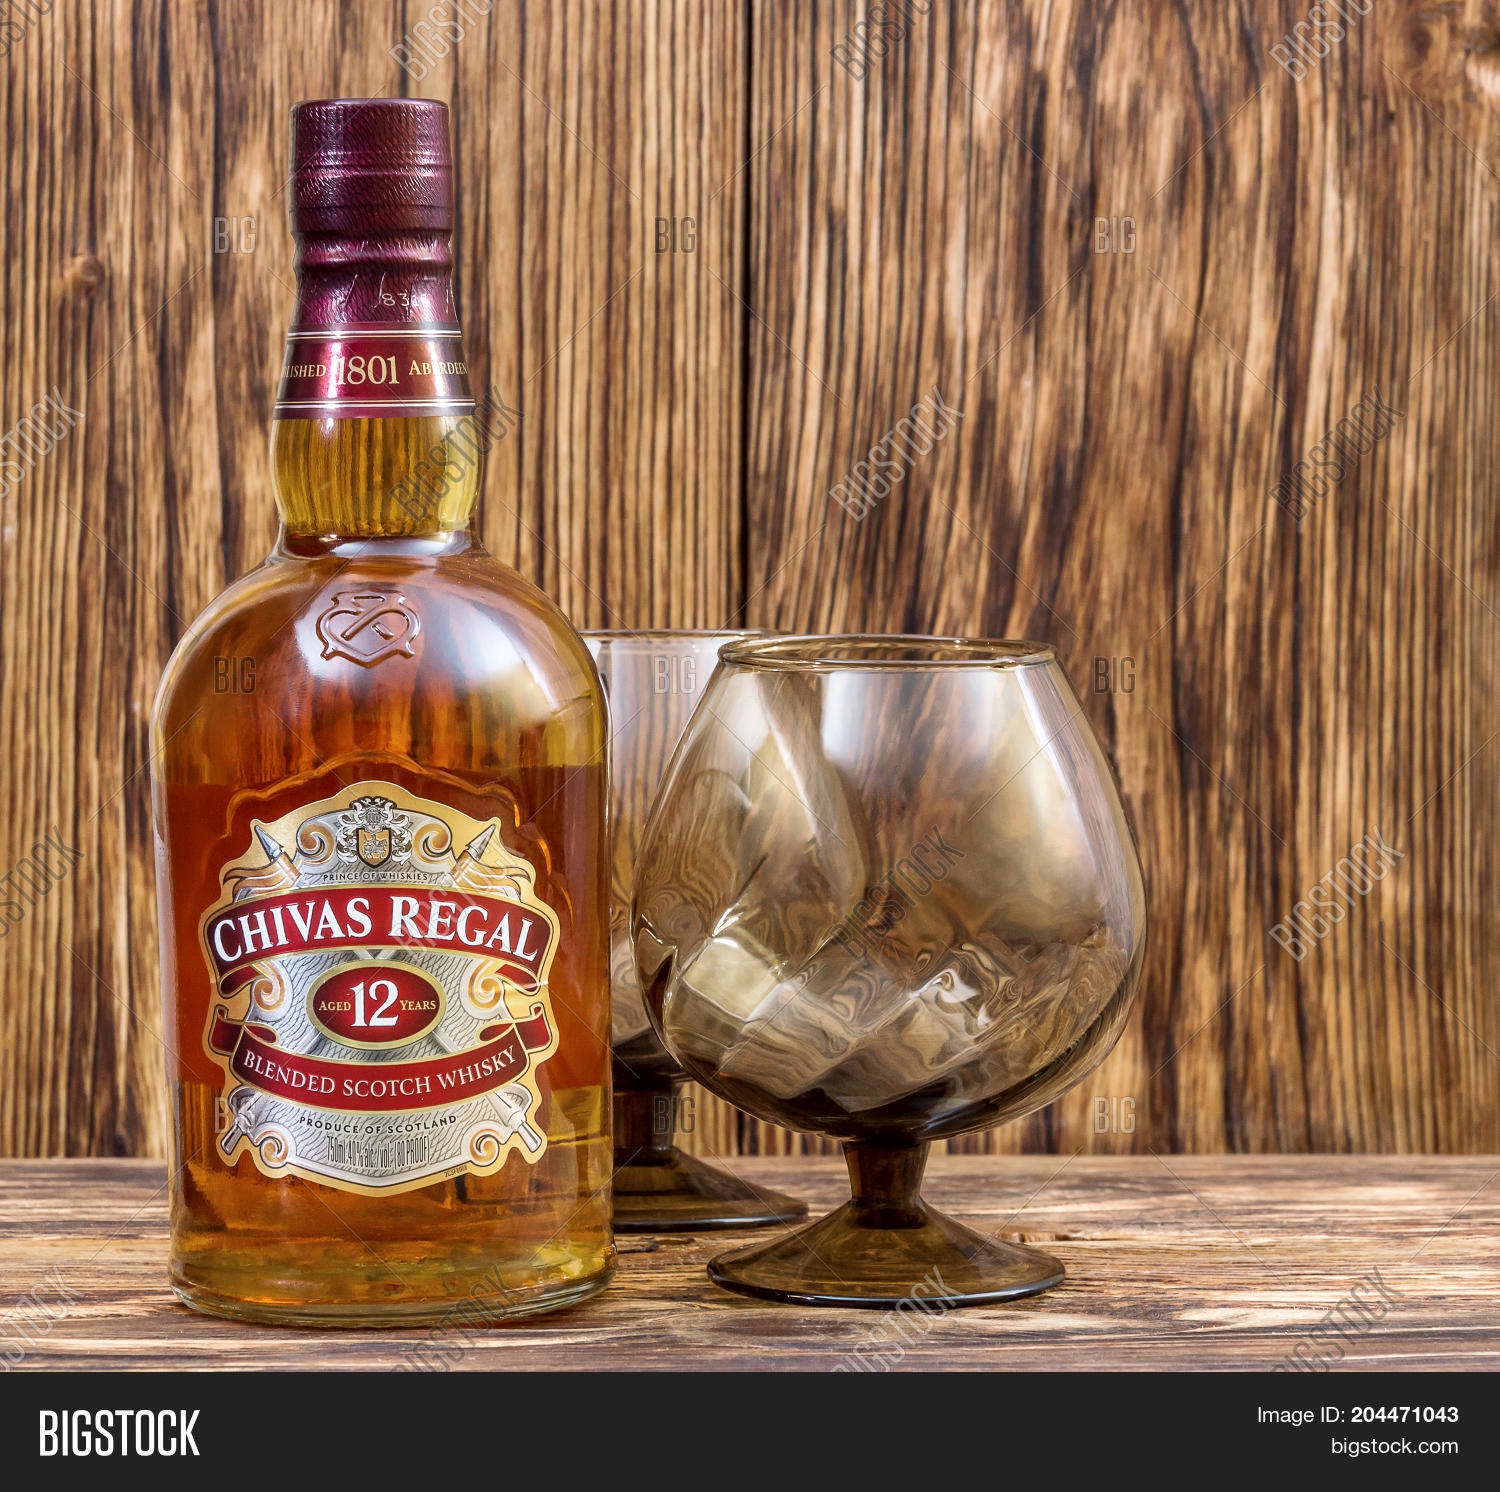 Ternopil ukraine august 26 2017 image photo bigstock ternopil ukraine august 26 2017 bottle of blended scotch whisky chivas regal 12 voltagebd